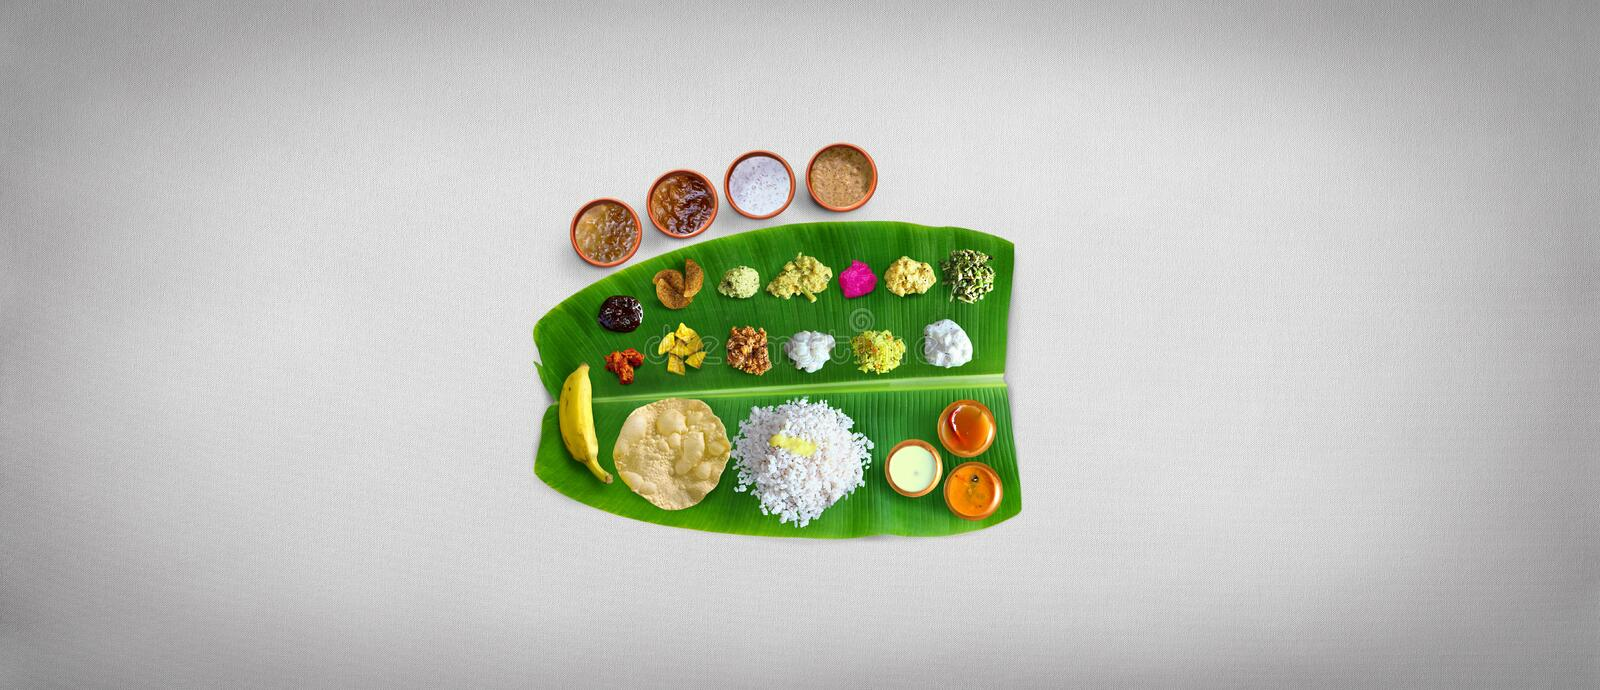 Traditional food Onam Sadya served on a banana leaf on Festival day onam,  Vegetarian meal with rice and curries, kerala food, Ker. Ala, india stock photo